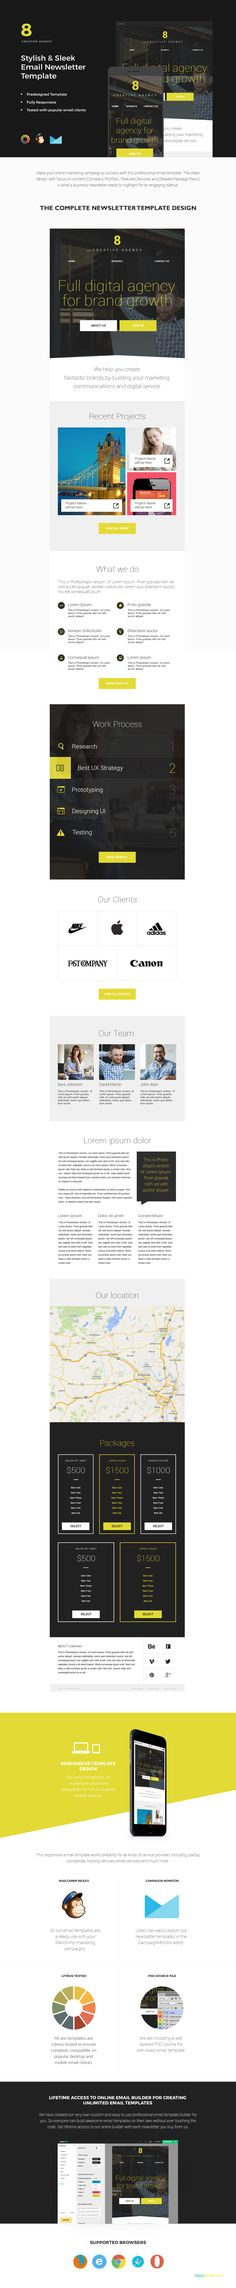 Email Newsletter Templates Bundle By ZippyPixels On - Campaign monitor html templates